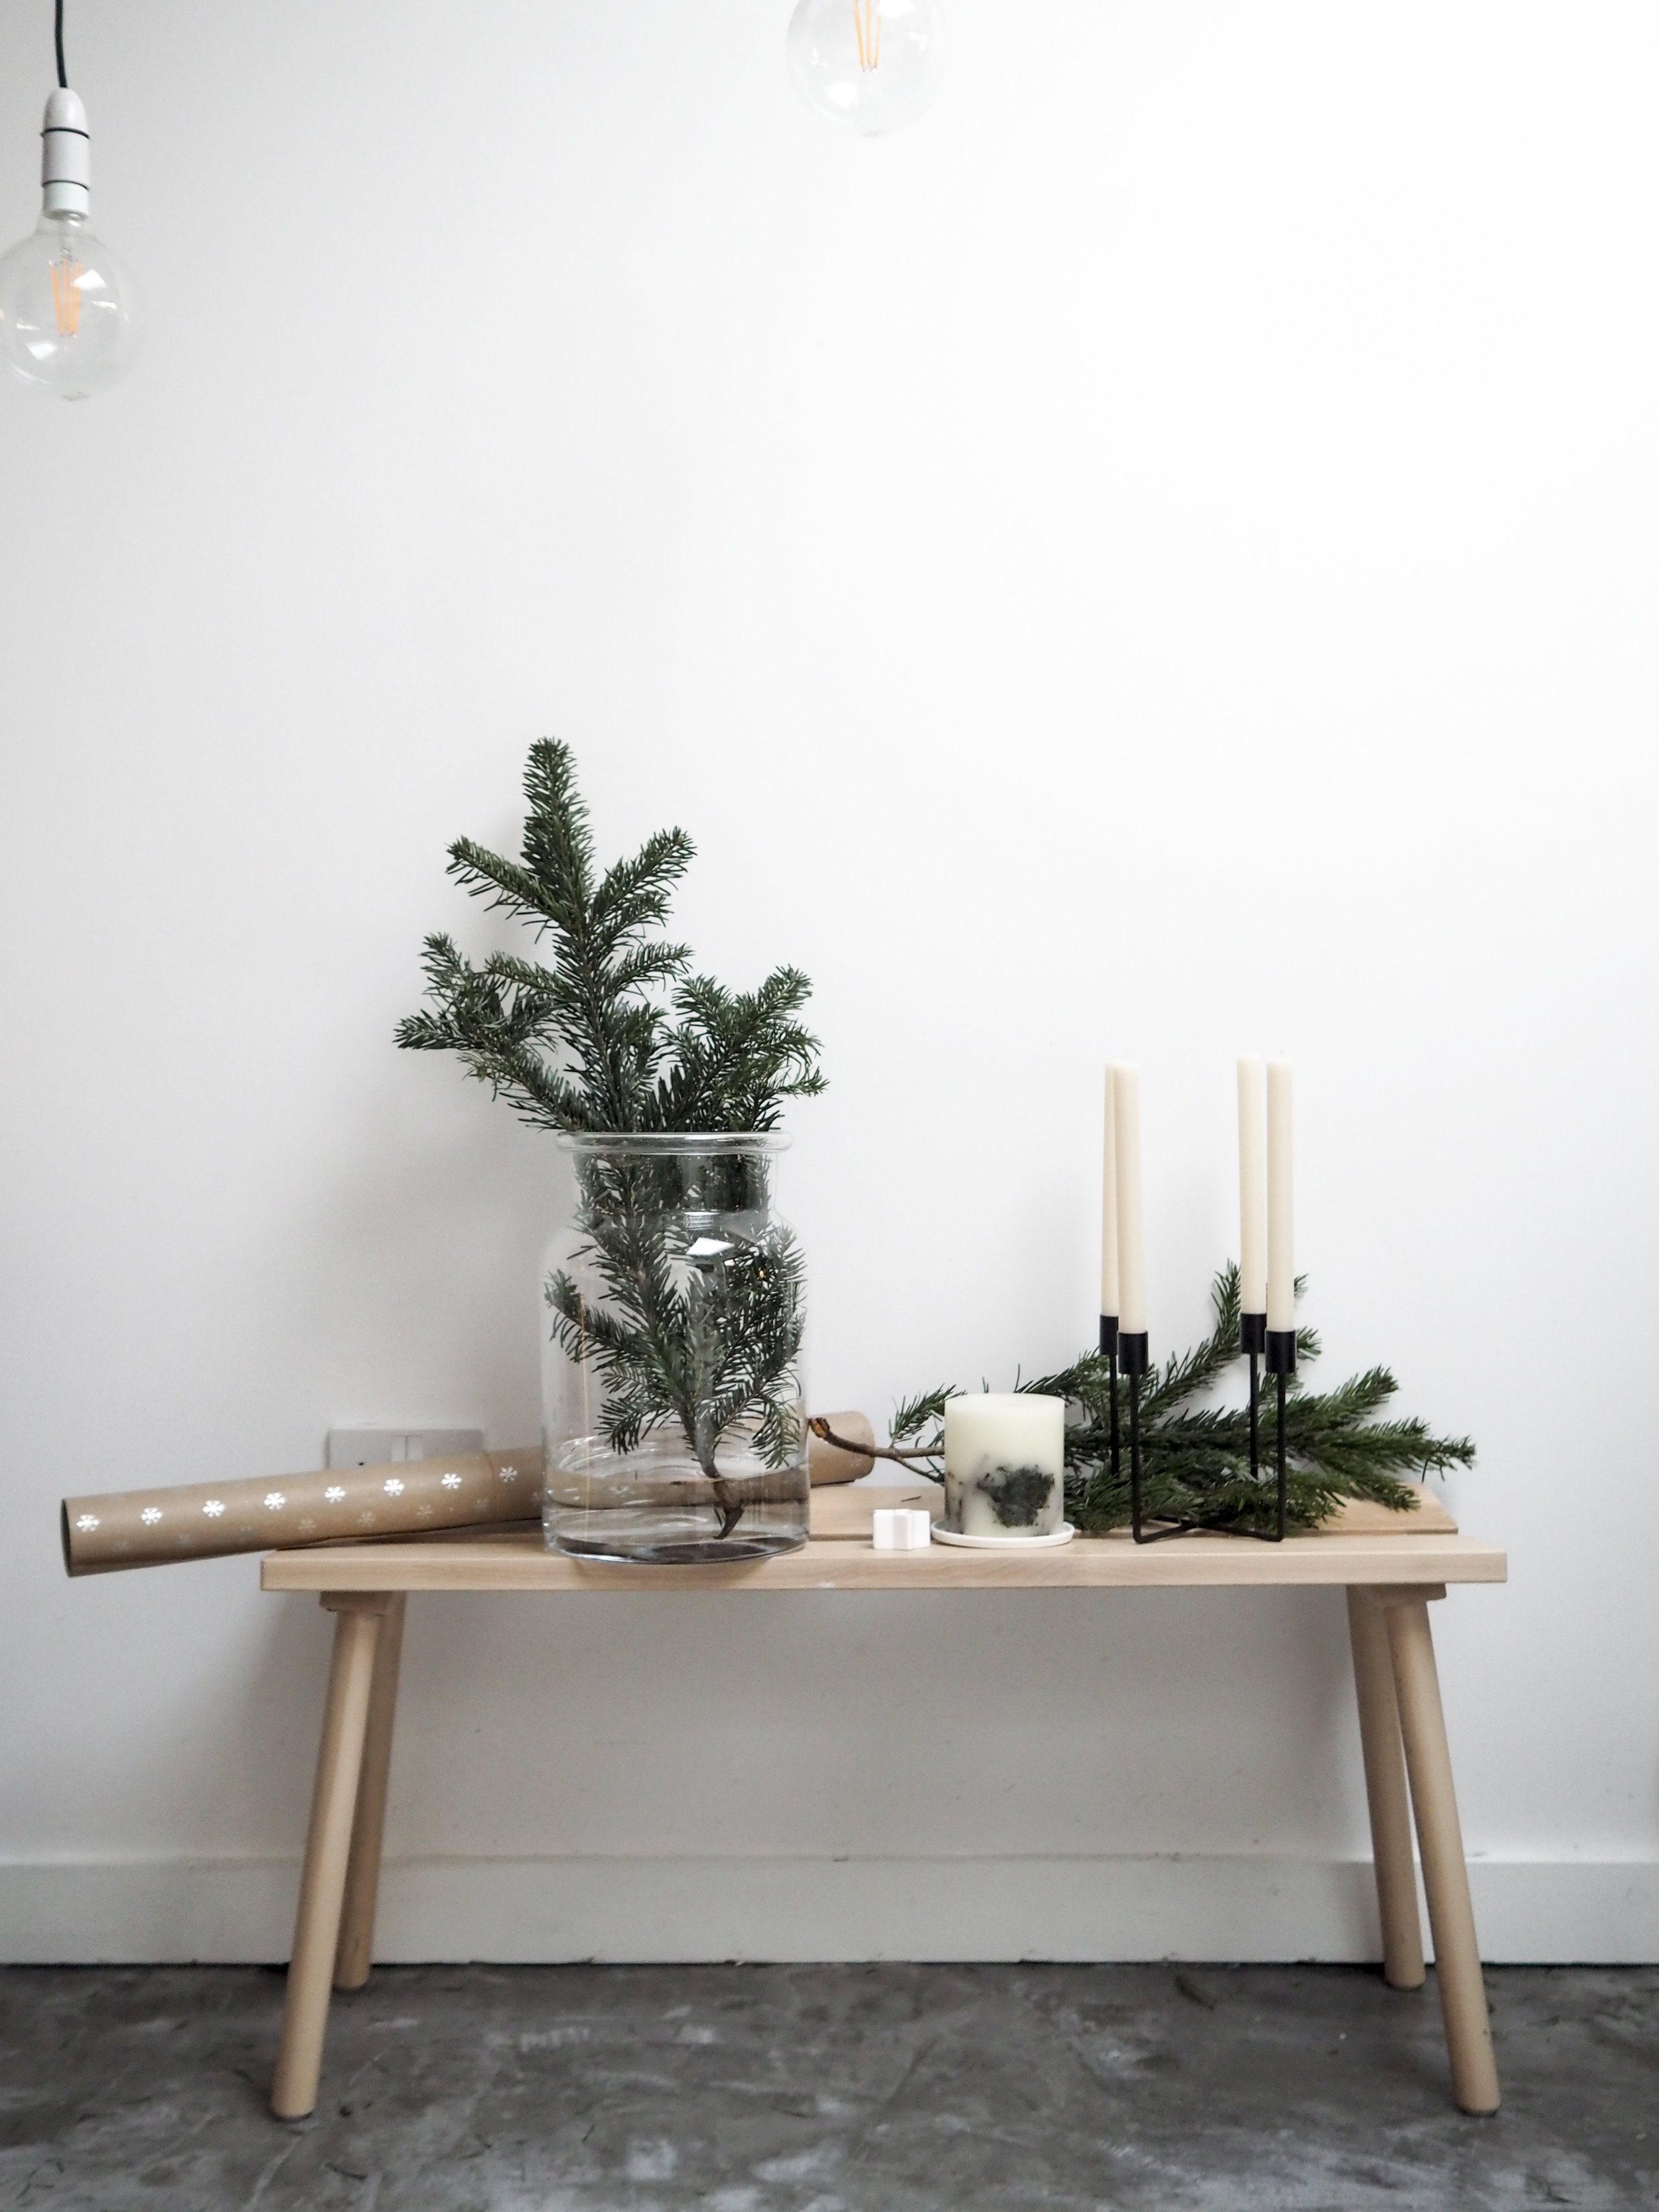 Aurelie Vase  /  Fir Tree Botanical Candle  /  Candle Plate  /  Pure Dinner Candles  /  Wrapping Paper